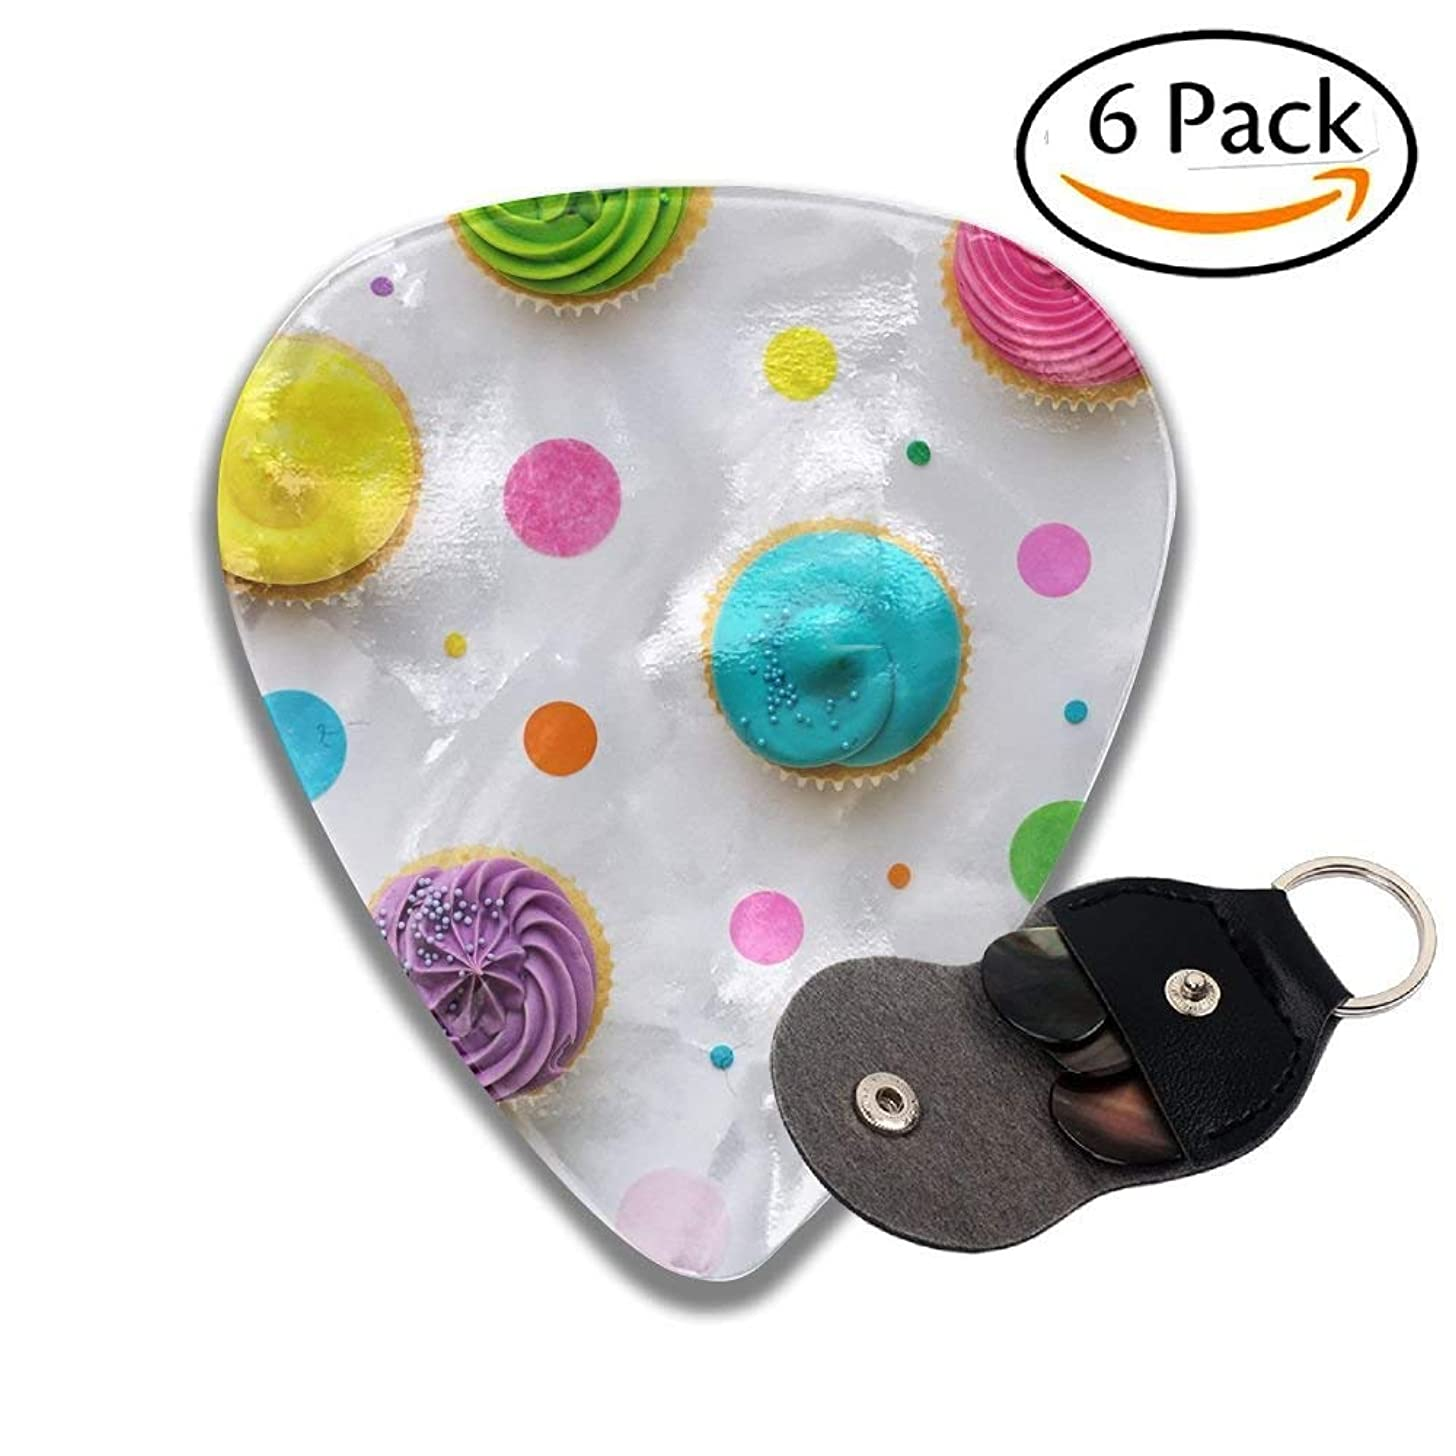 Colorful Cupcakes On A White Background Colorful Celluloid Guitar Picks Plectrums For Guitar Bass .46mm 6 Pack